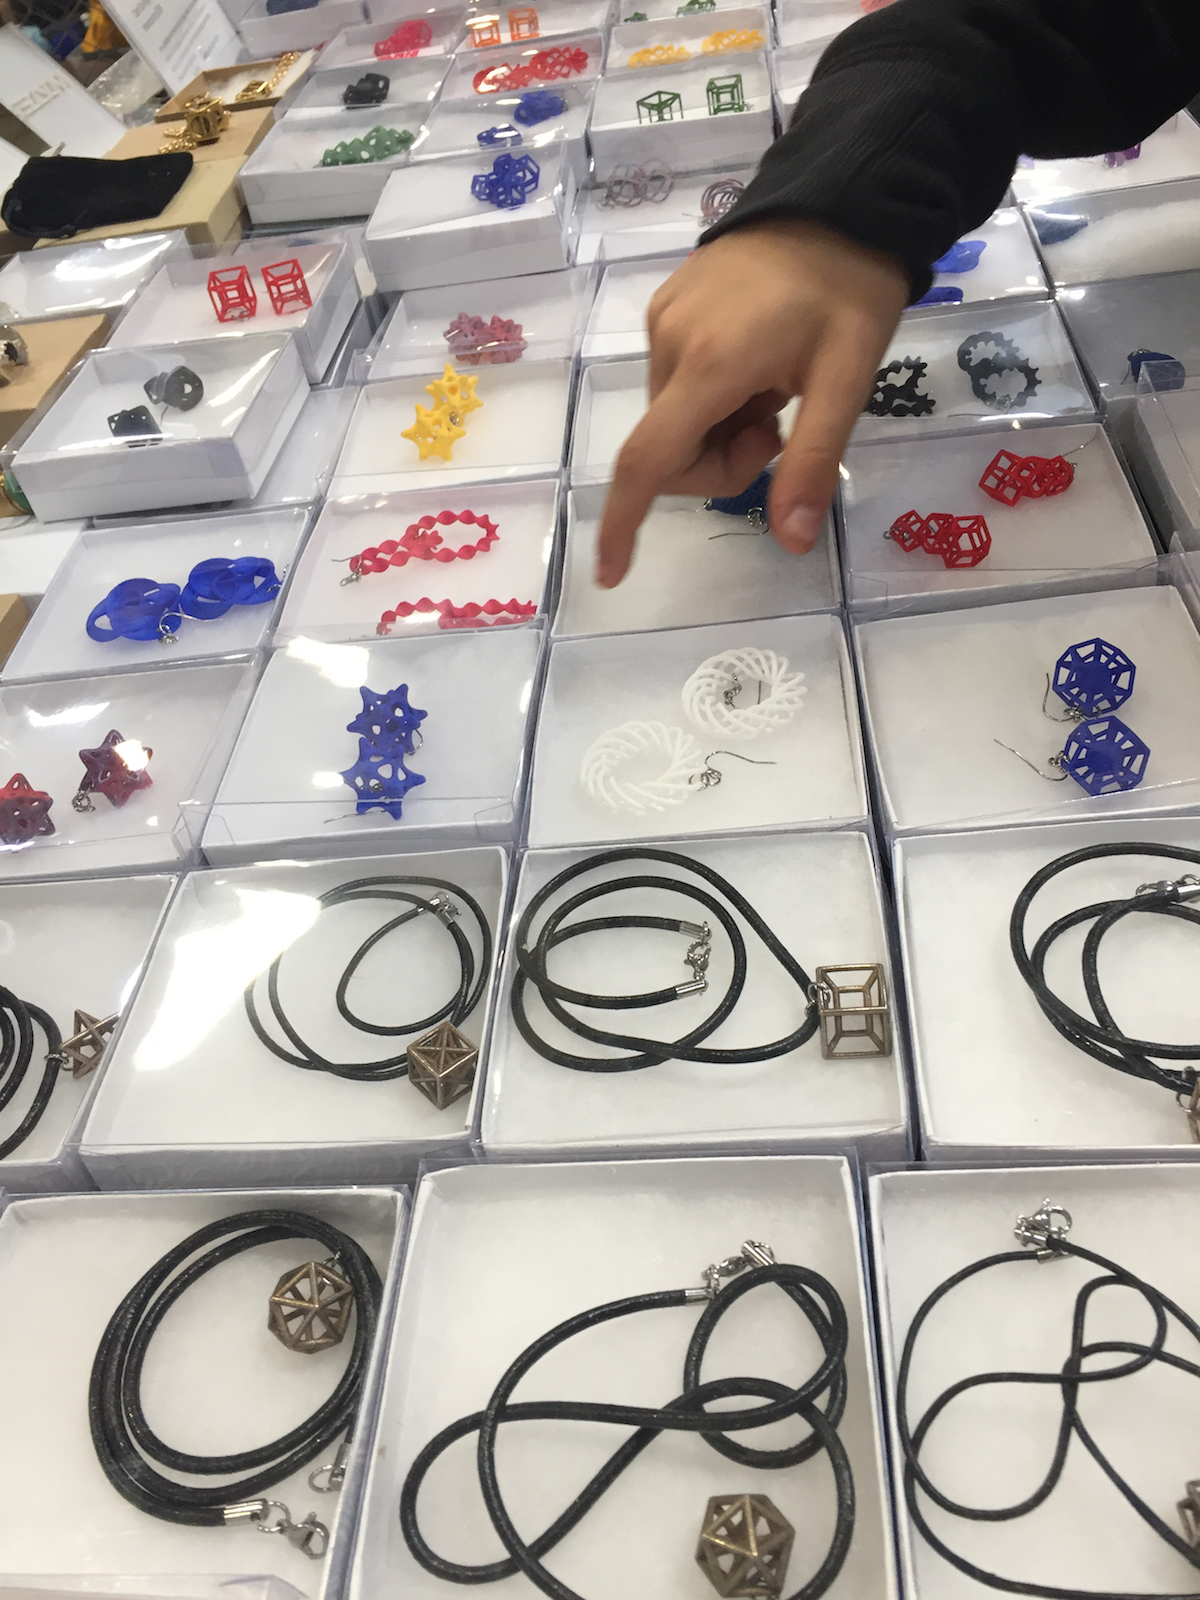 Live Updates From Maker Faire Bay Area 2018 Make Flying Hobby Sharing Agic Print Printing Circuit Boards With 3d Printed Jewelry Was On Sale Unique Geometries Kitty 354pm